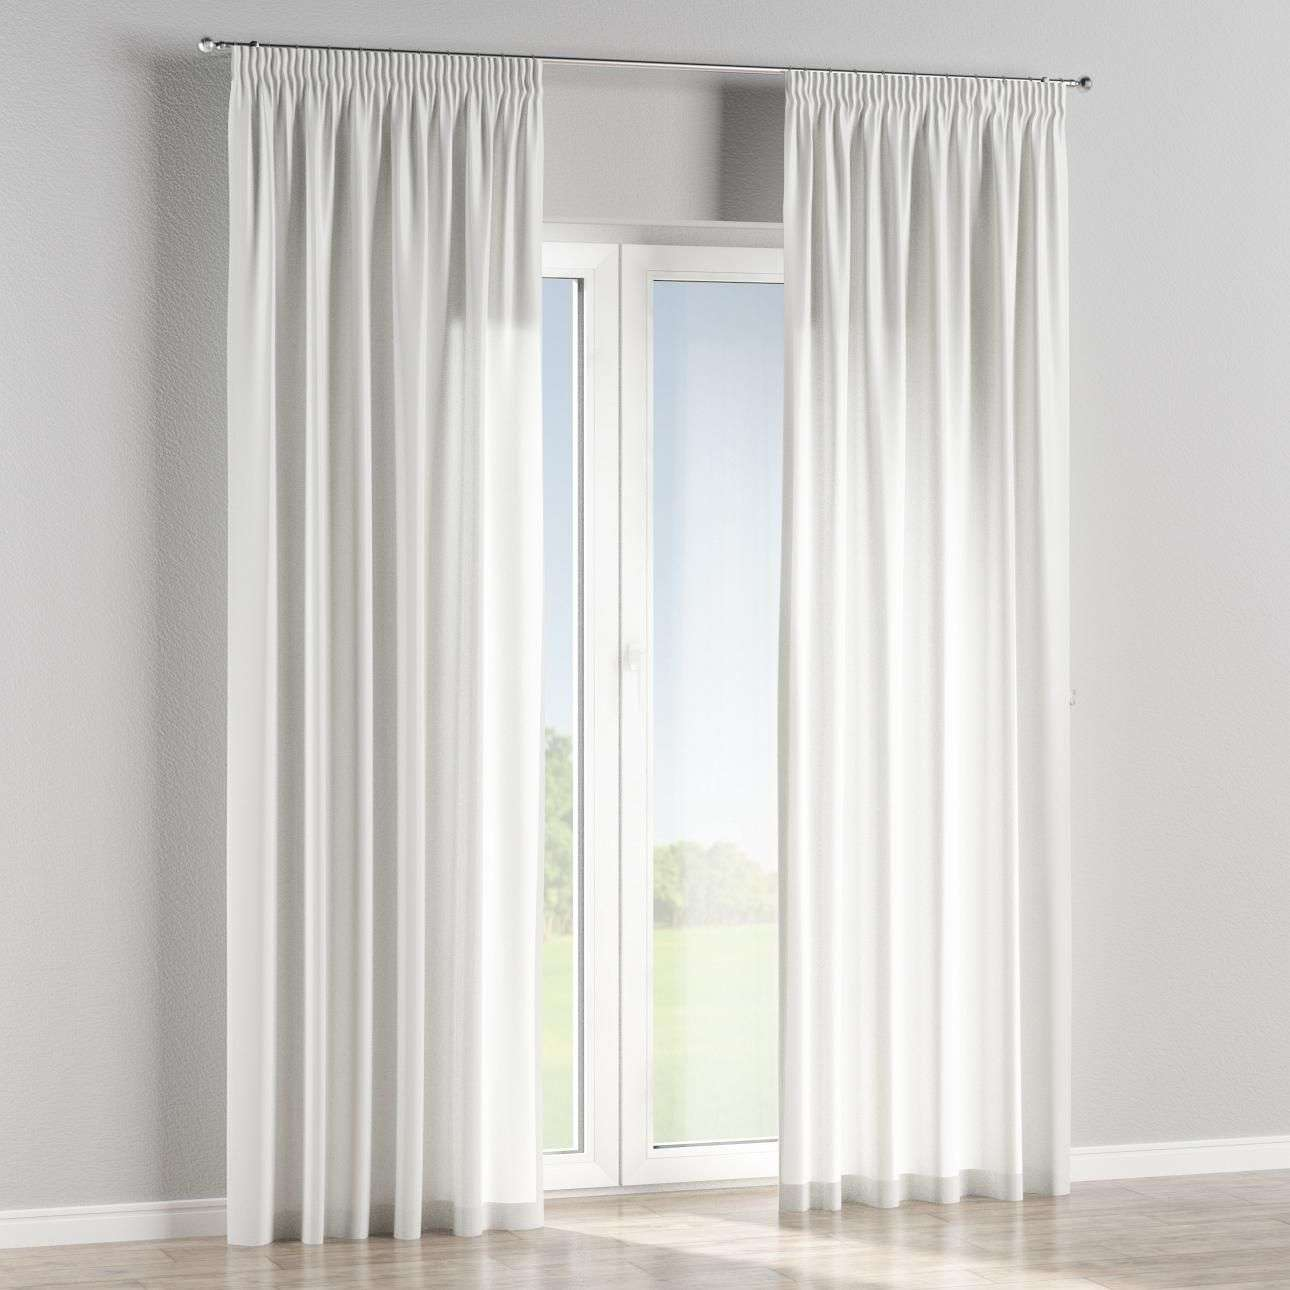 Pencil pleat curtains in collection Venice, fabric: 140-54